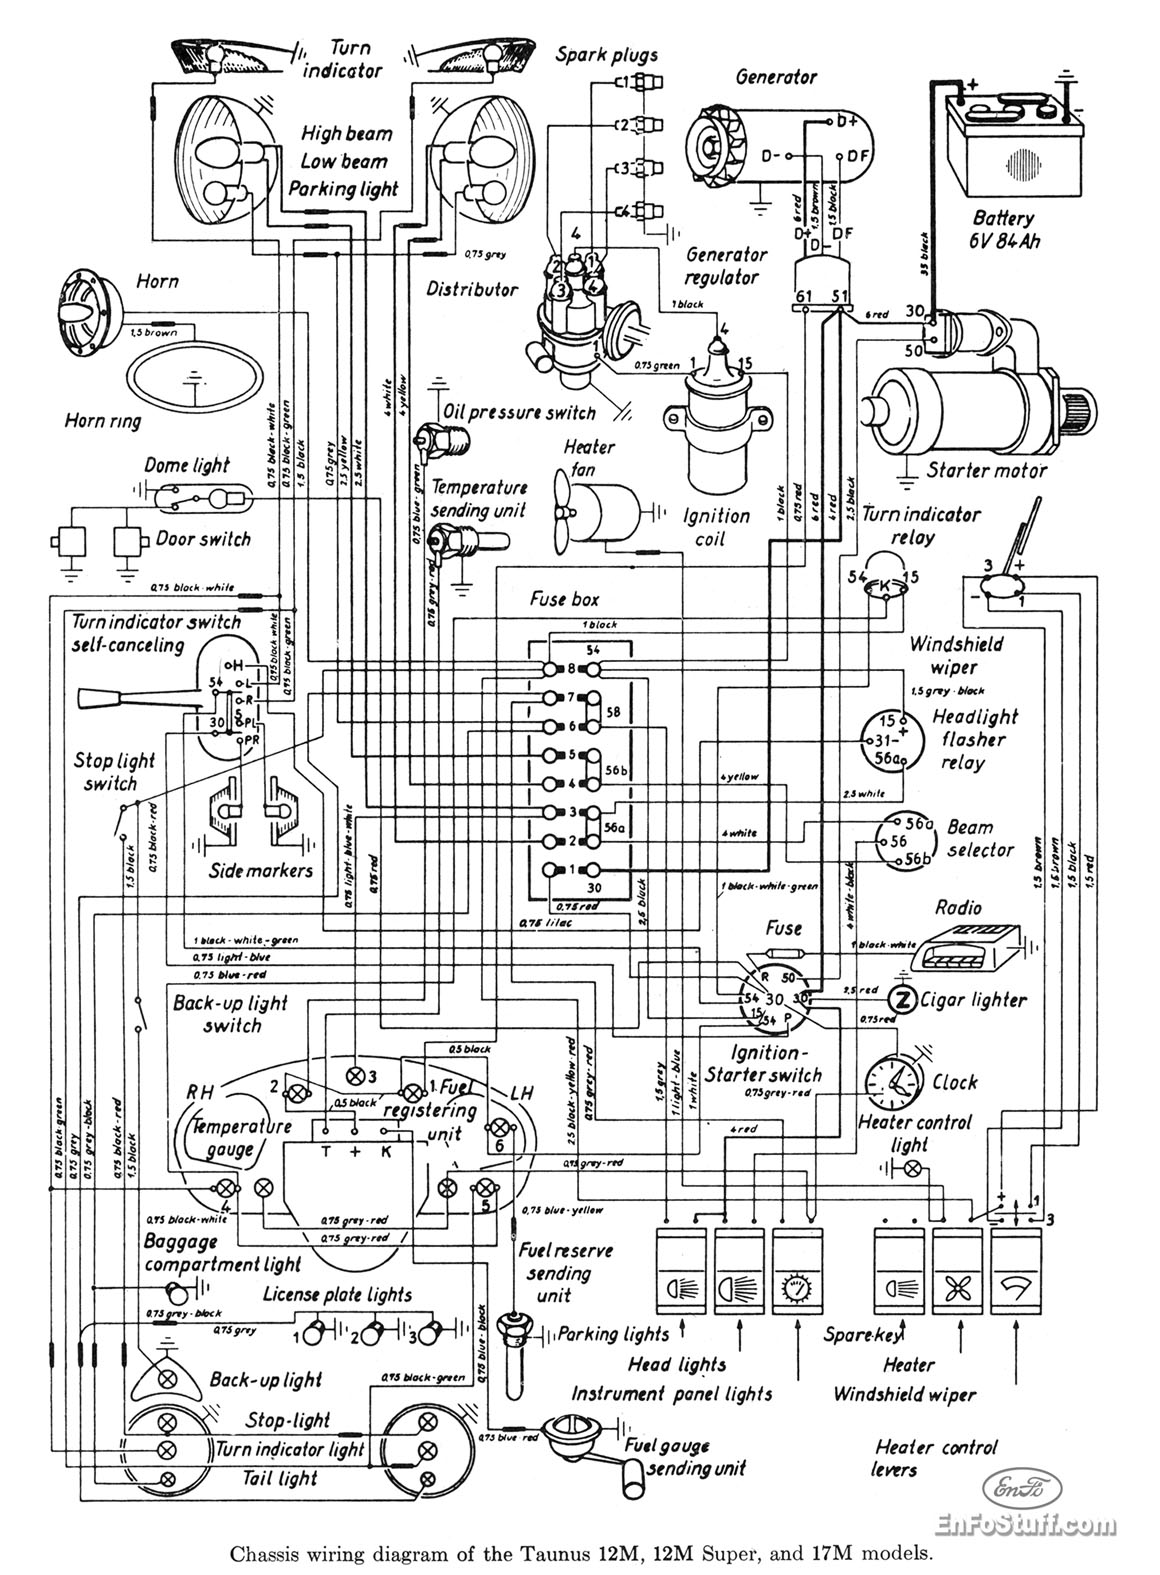 ford taunus 12m 17m wiring diagram citroen c4 wiring diagram citroen c4 stereo wiring diagram c4 corvette fuse box diagram at reclaimingppi.co